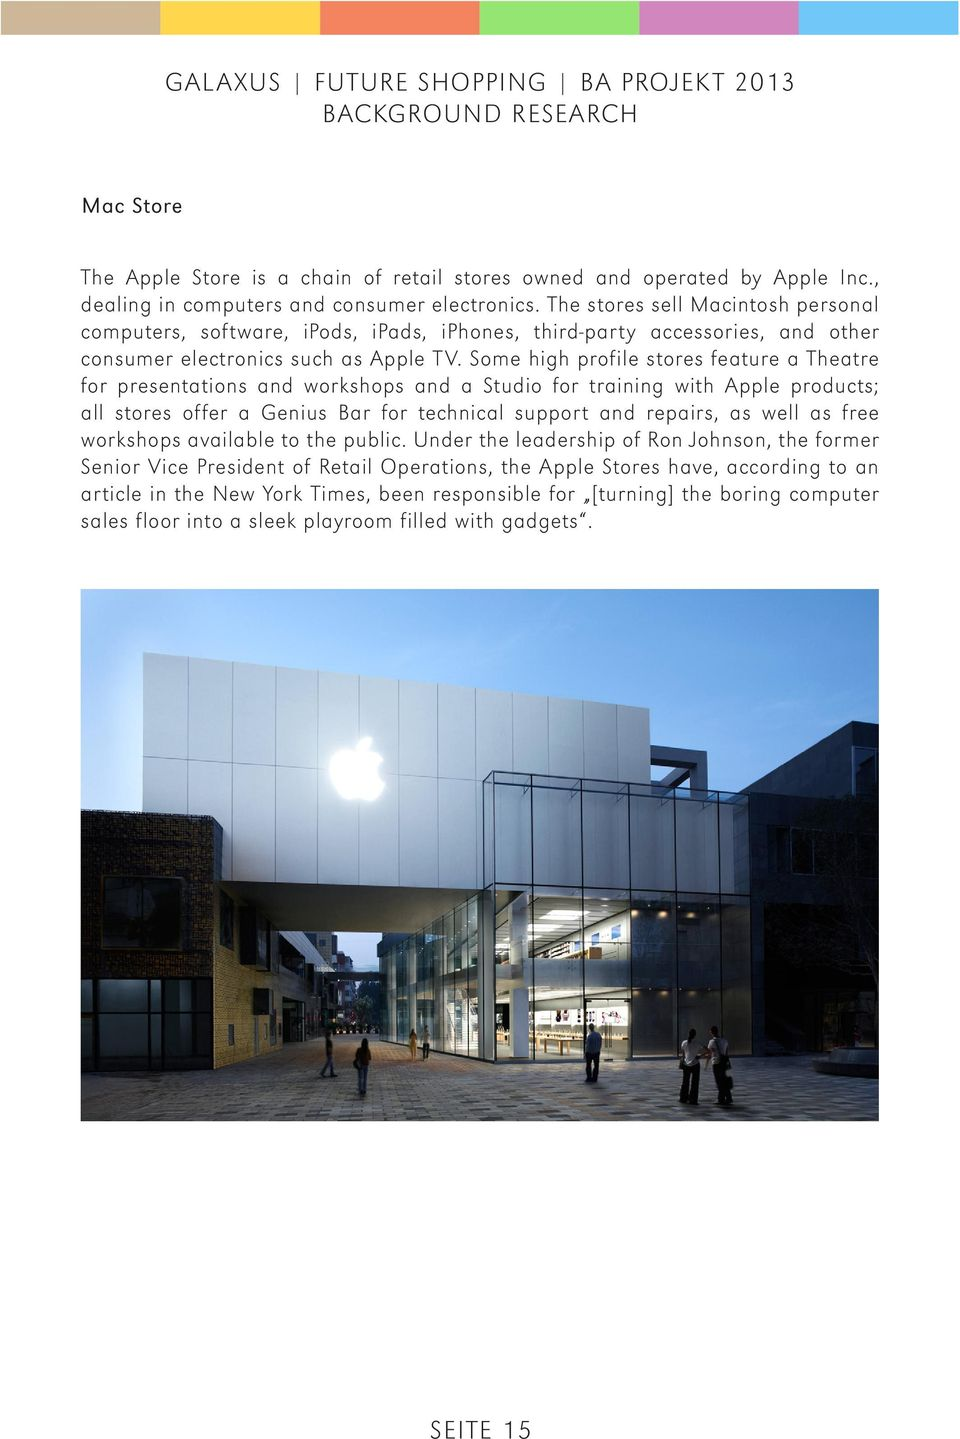 Some high profile stores feature a Theatre for presentations and workshops and a Studio for training with Apple products; all stores offer a Genius Bar for technical support and repairs, as well as